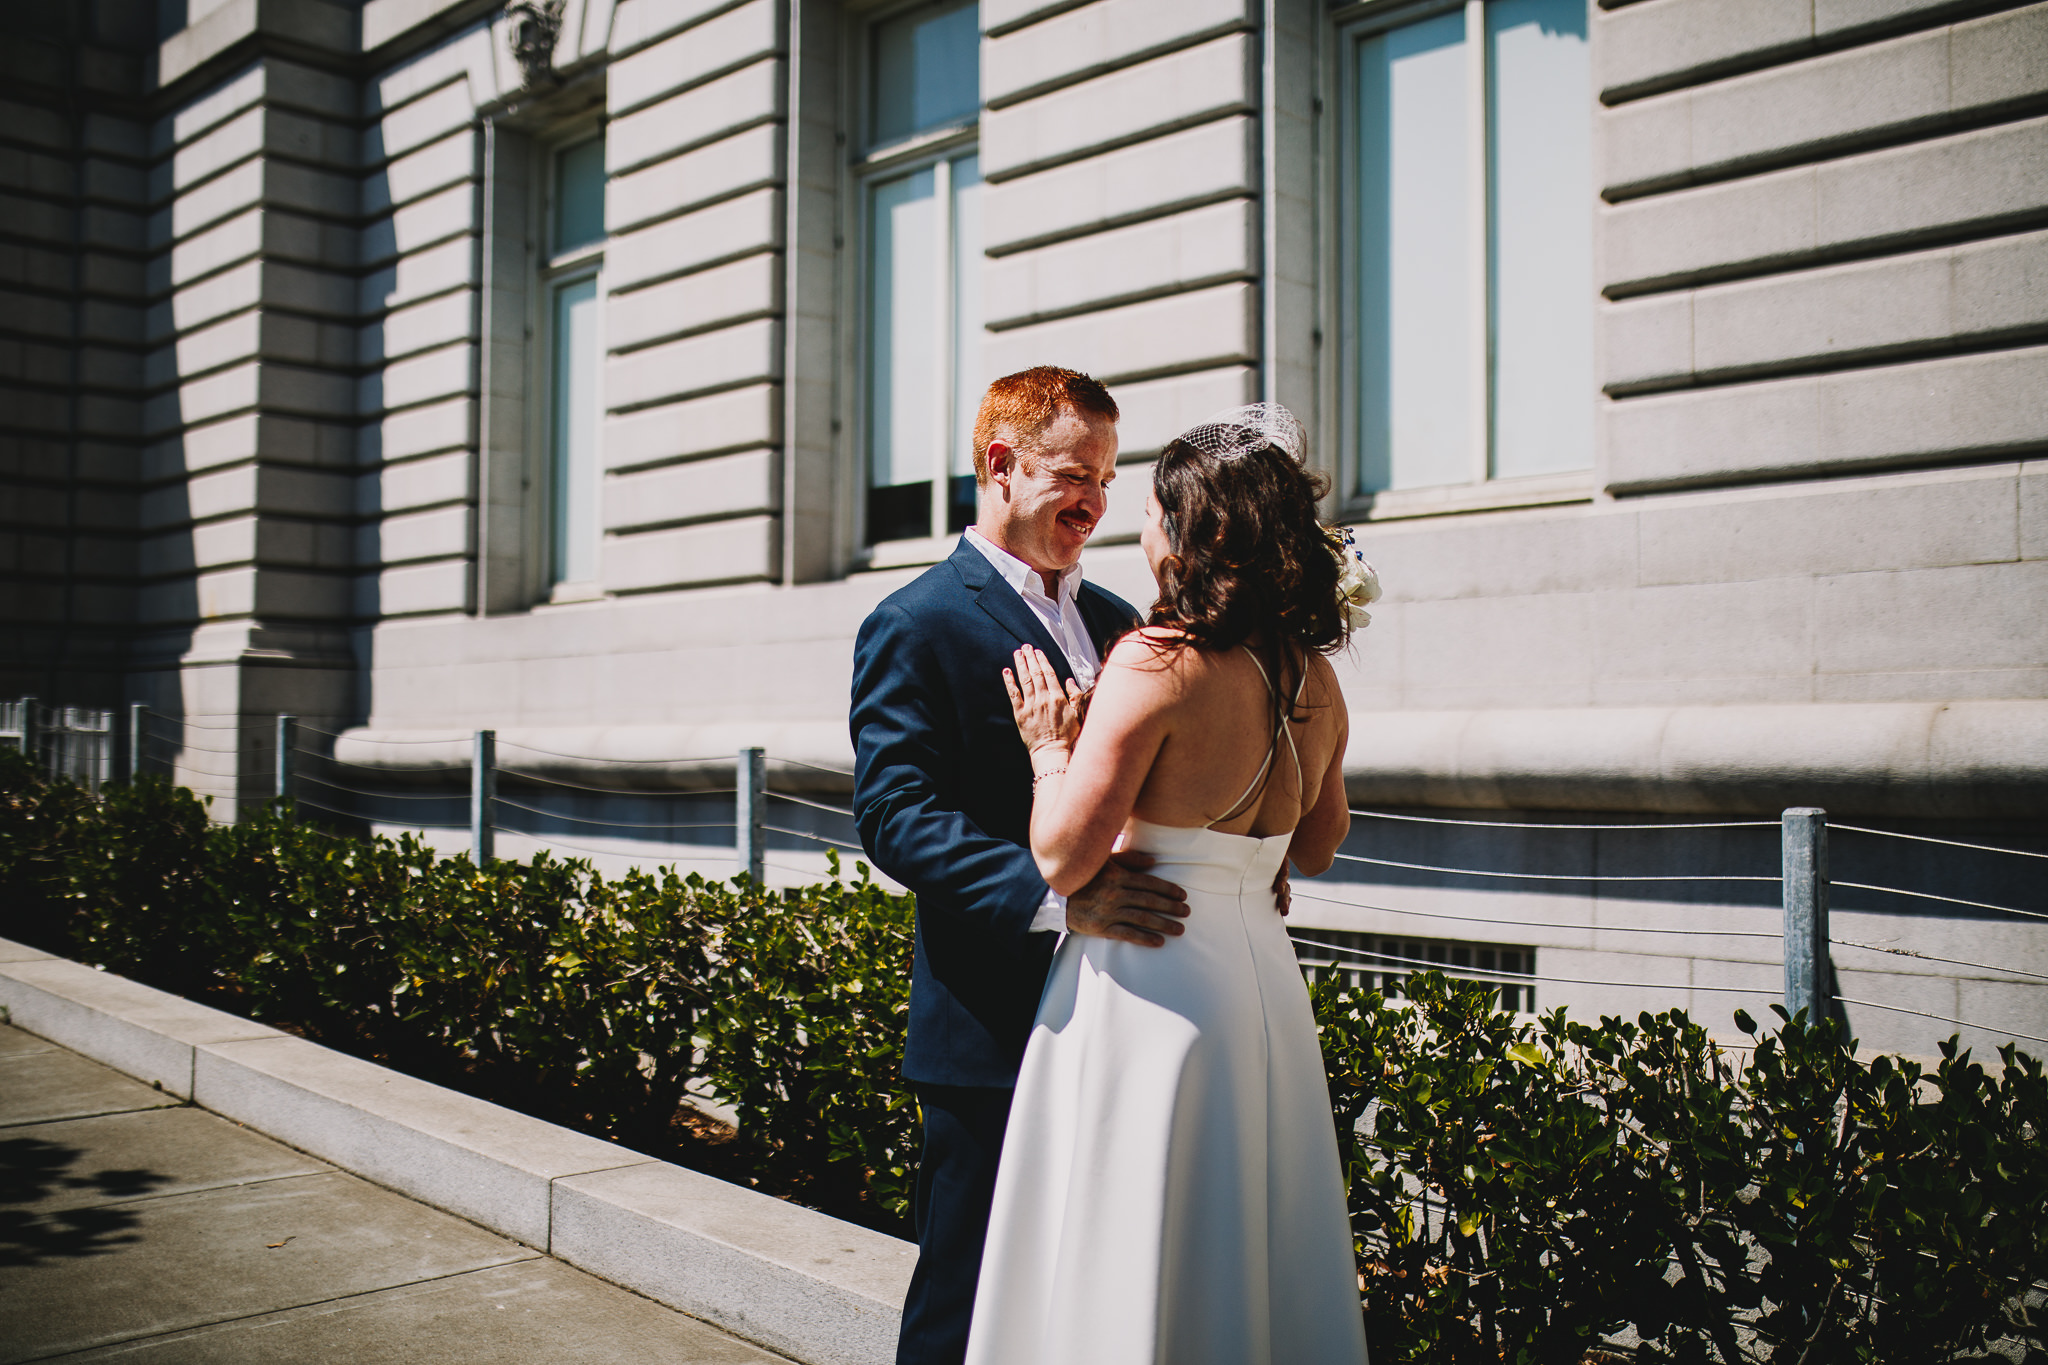 Archer Inspired Photography SF City Hall Elopement Wedding Lifestyle Documentary Affordable Photographer-51.jpg